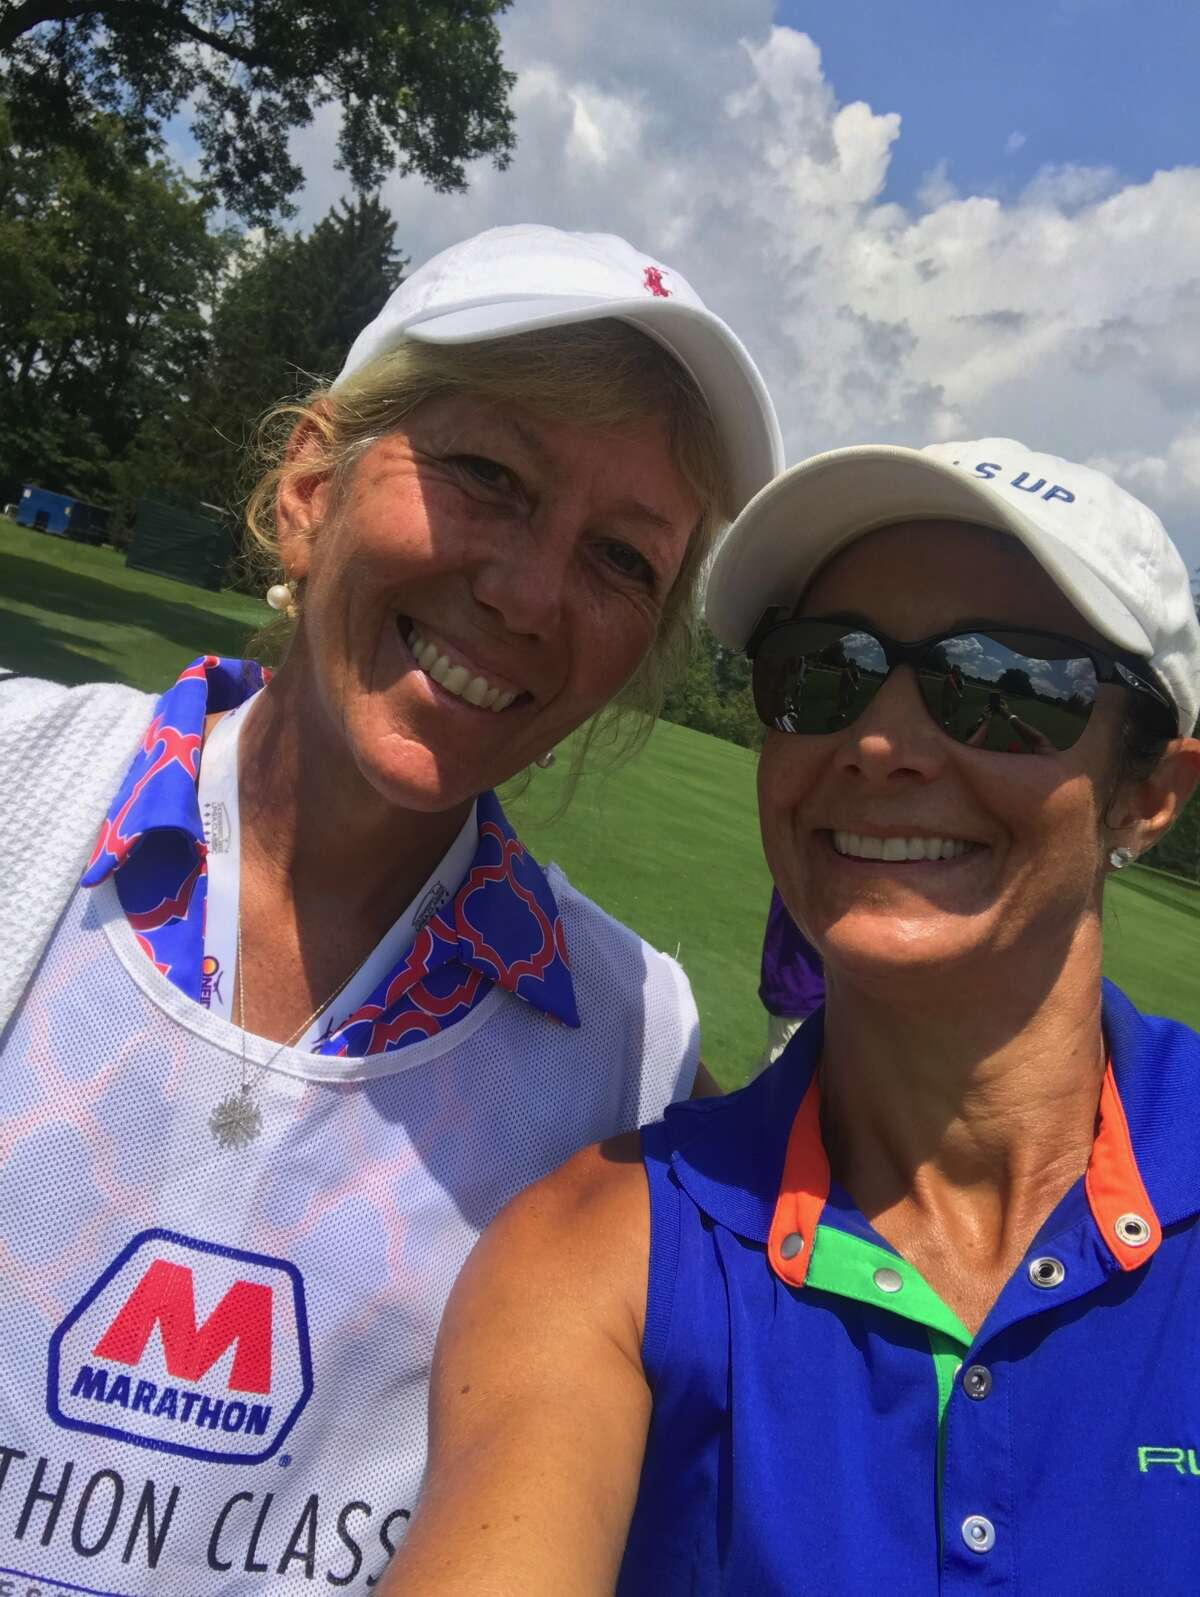 LPGA golfer Laura Diaz, right, and her new caddy Susan Bond teamed up for a tied for 20th finish at Highland Meadows Golf Club in Ohio on July 23, 2017. Diaz qualified to play in the British Open.